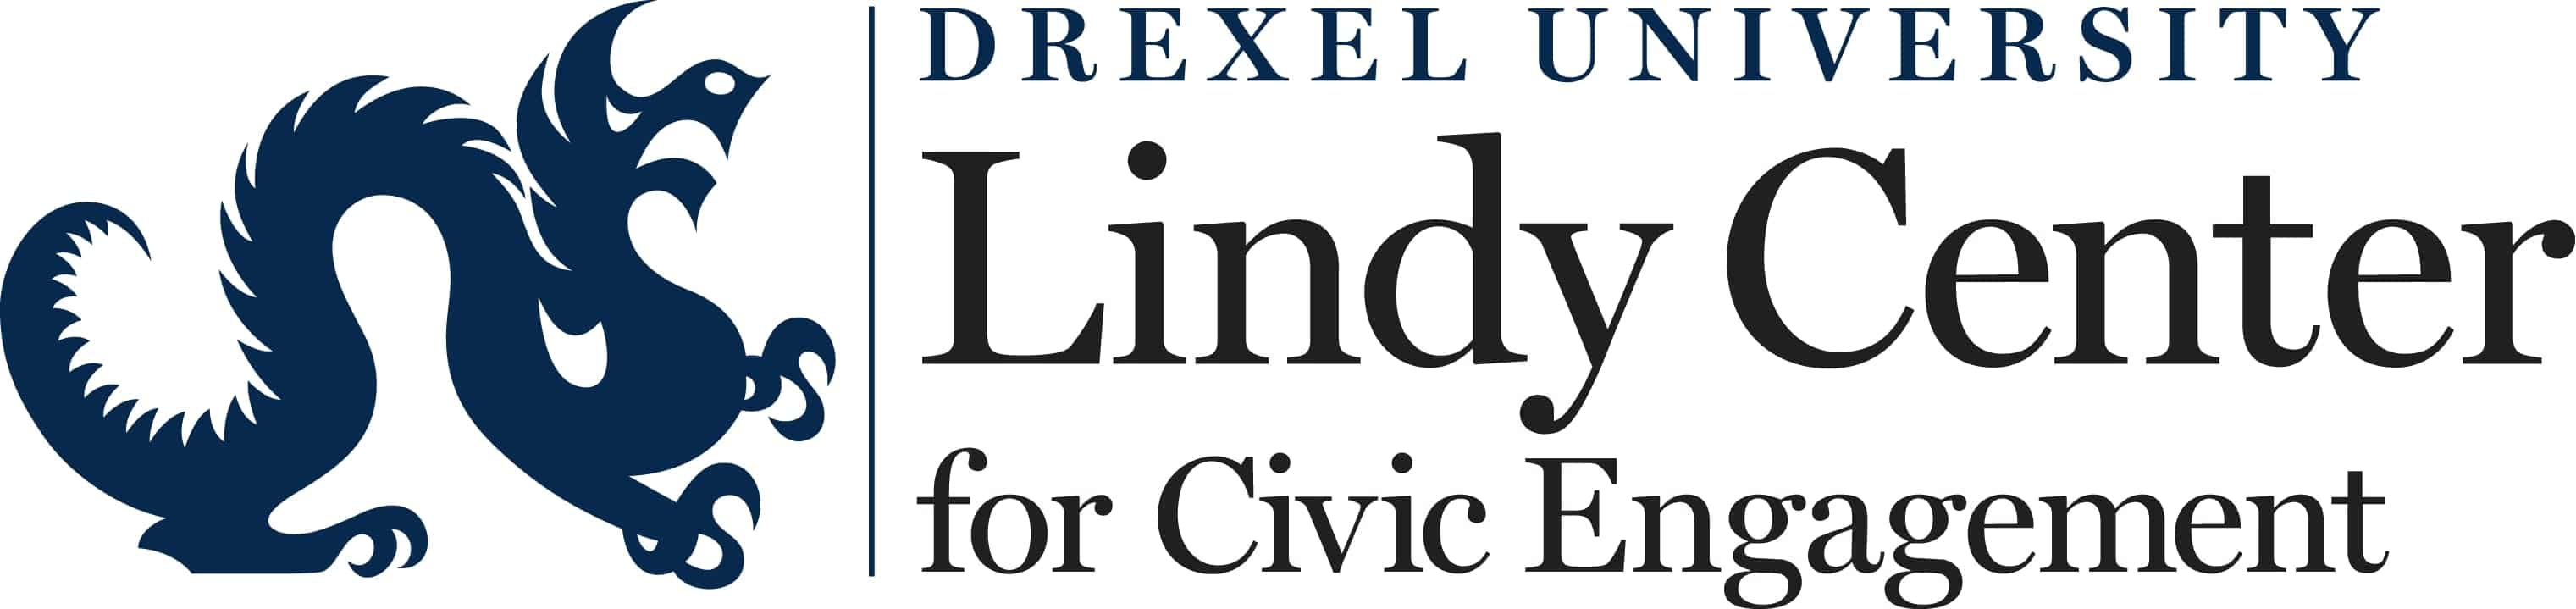 AA Lindy Center logo small.jpg